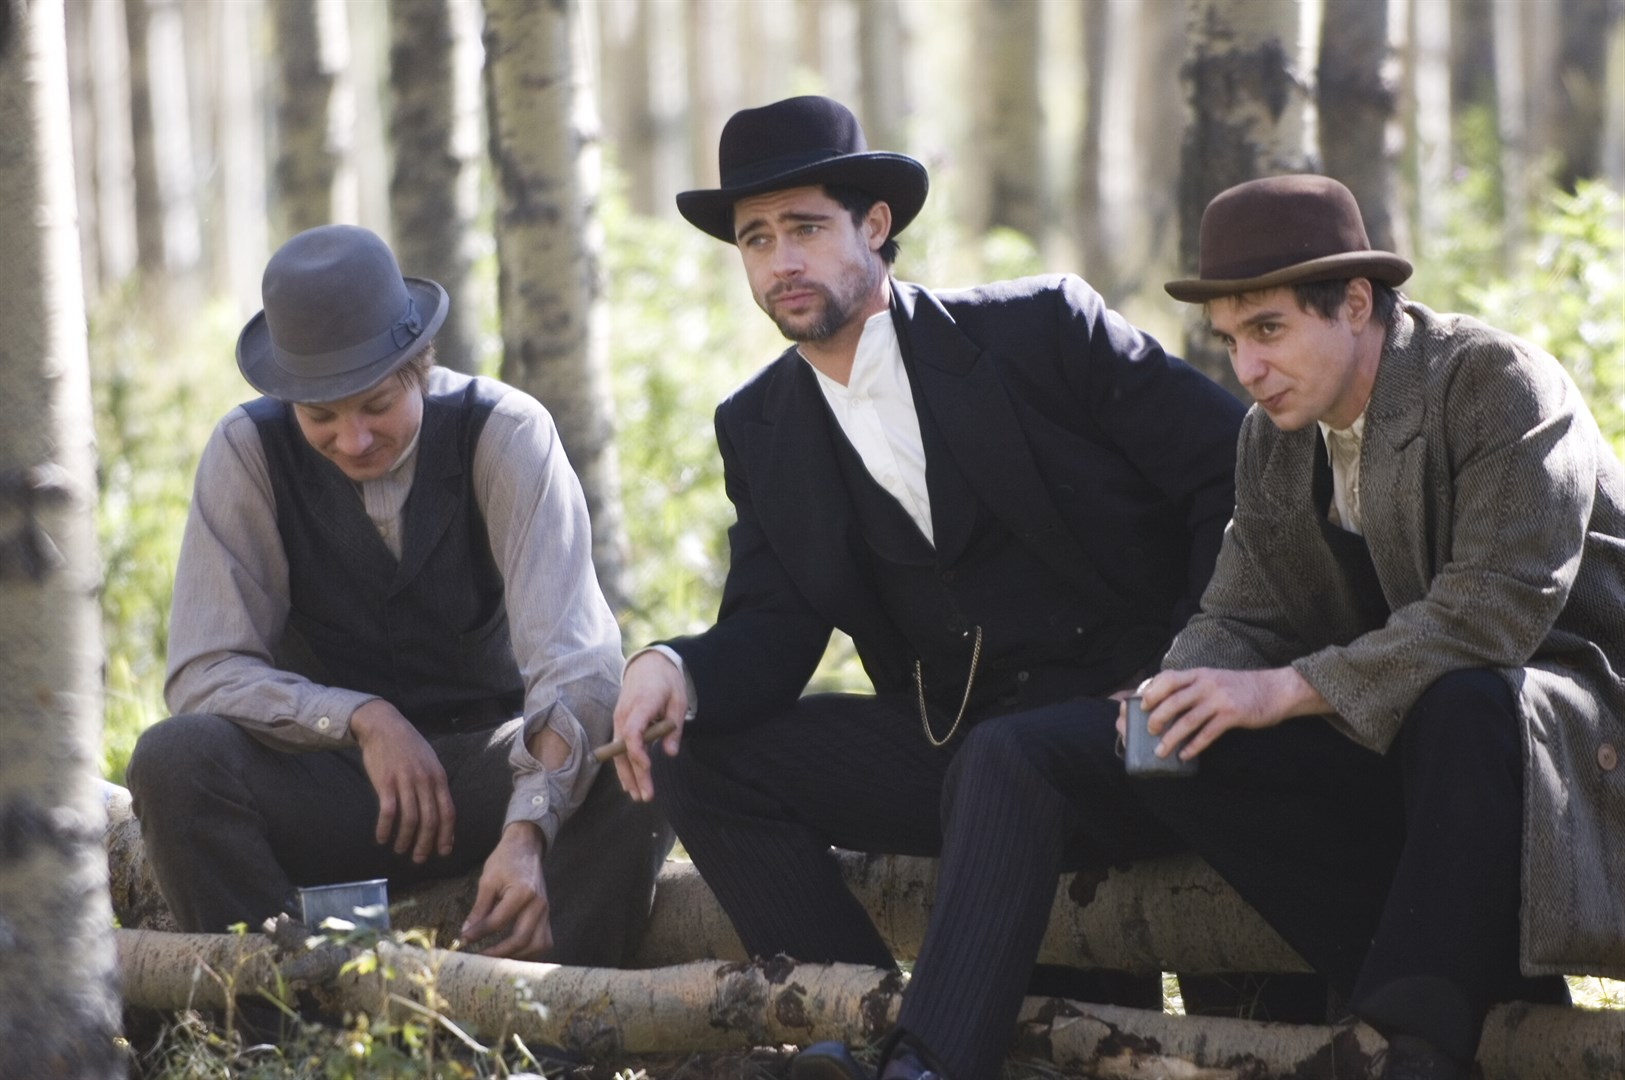 Buy The Assassination Of Jesse James By The Coward Robert Ford